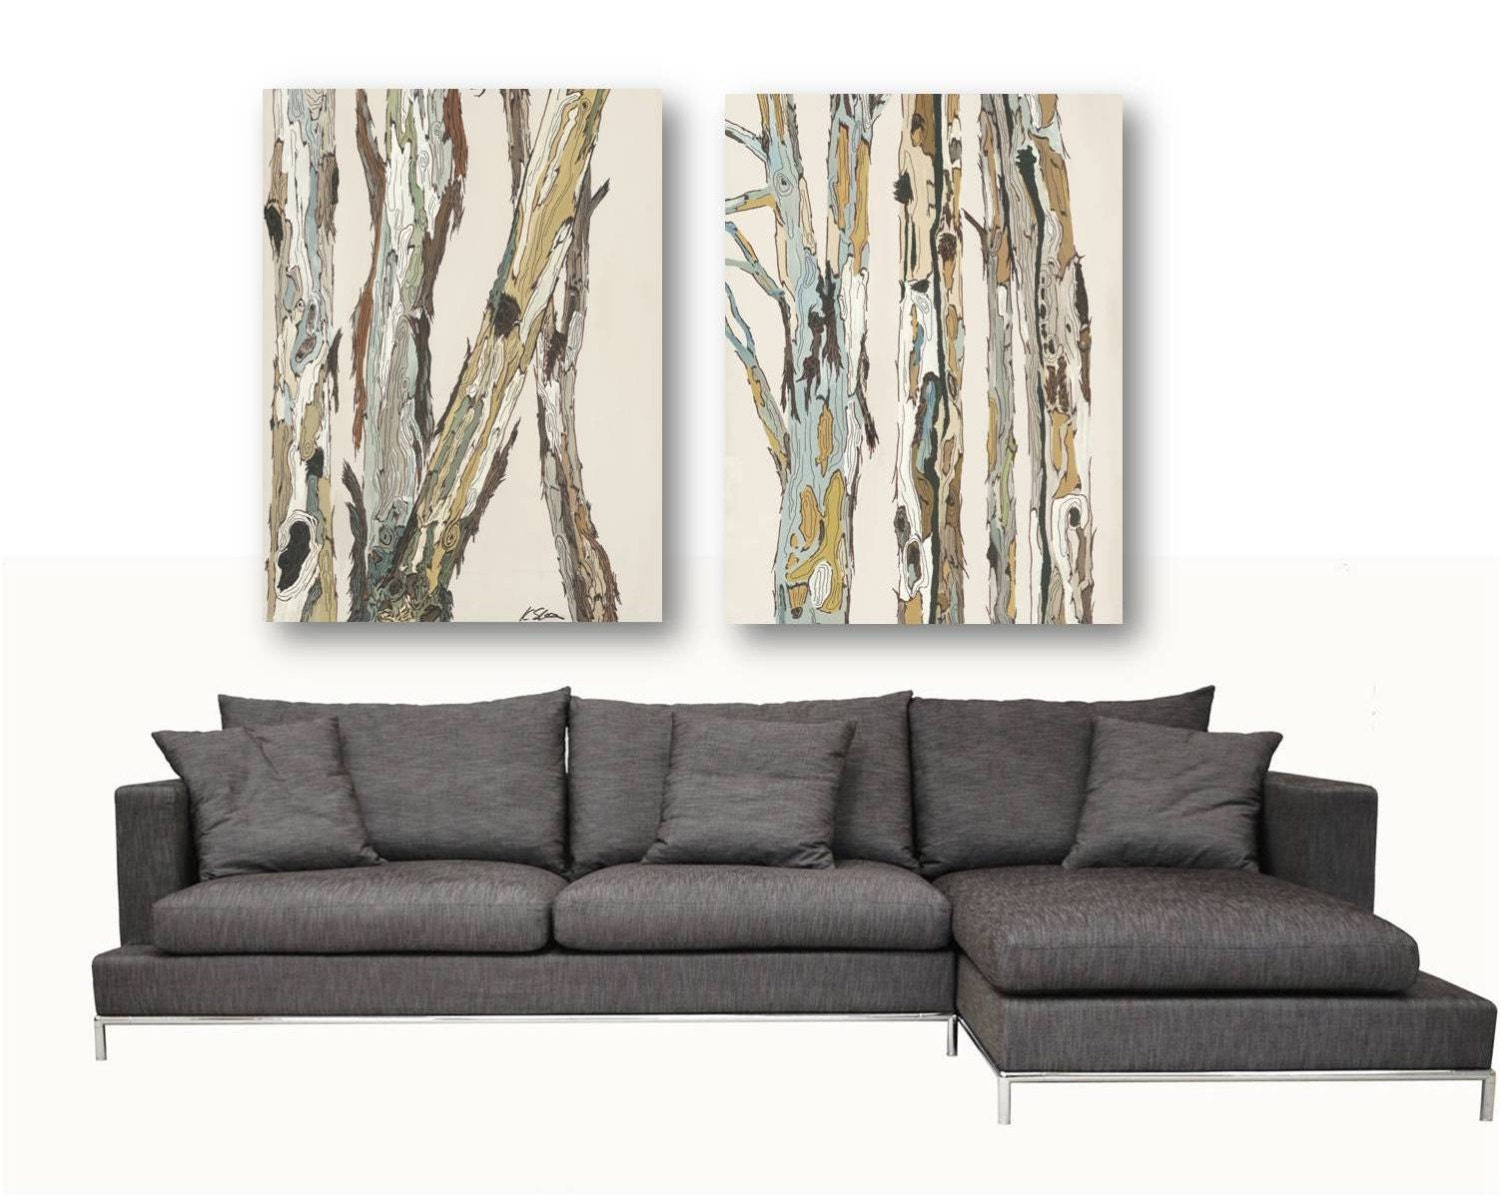 Extra large wall art diptych set canvas oversized by for Big wall decor